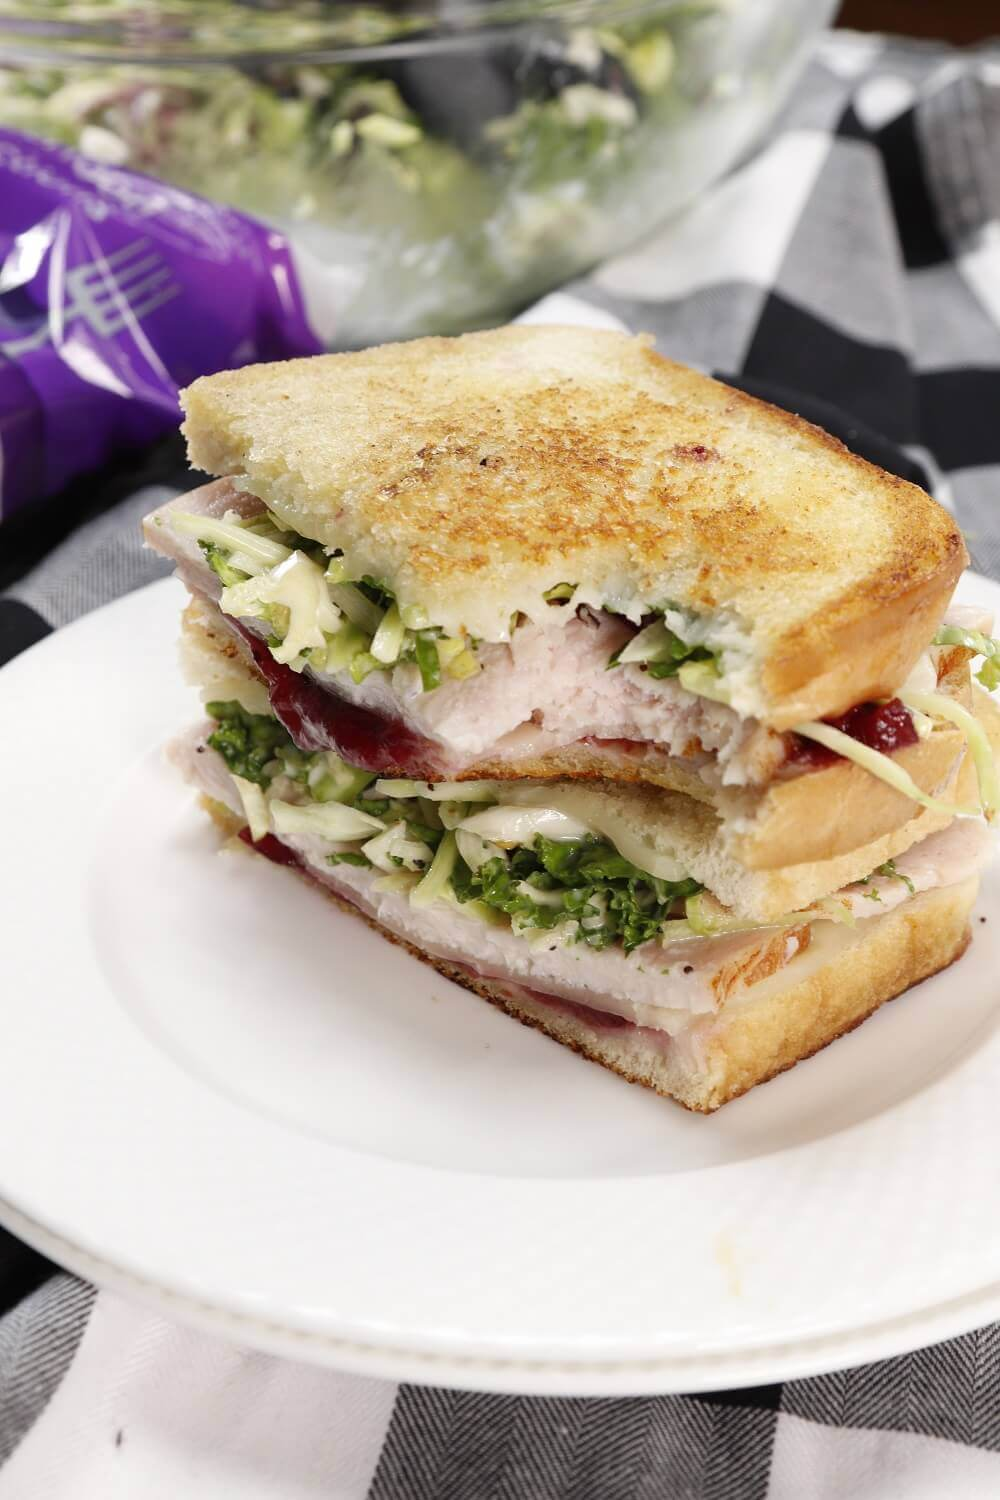 Bite into a Eat Smart® Sweet Kale, Turkey and Cranberry Sandwich